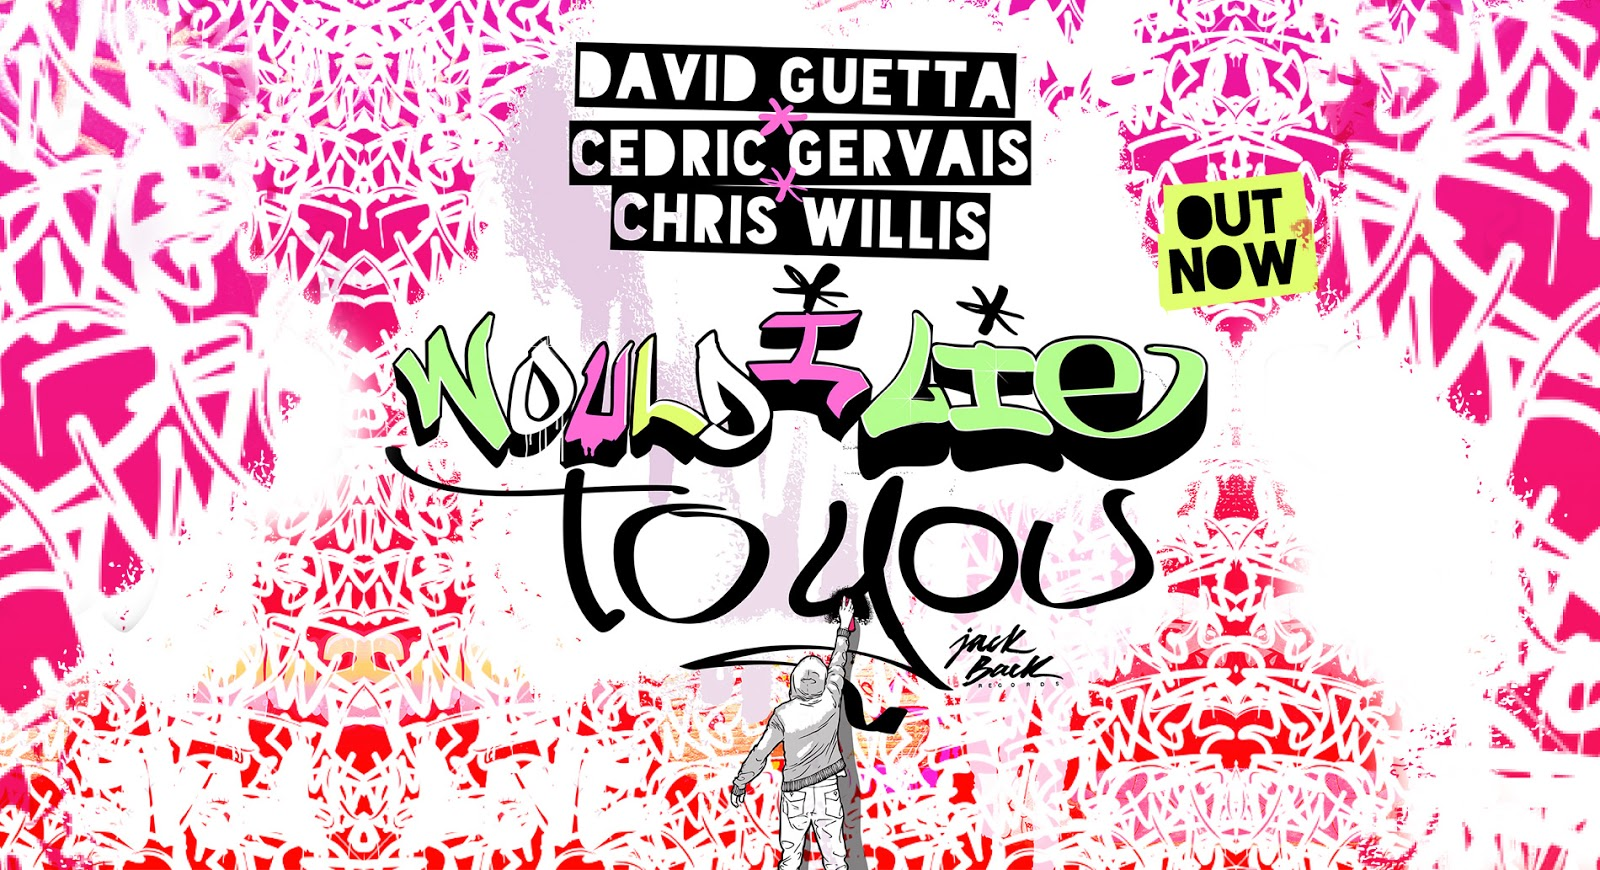 DAVID GUETTA CEDRIC GERVAIS GUETT WOULD I LIE TO YOU СКАЧАТЬ БЕСПЛАТНО